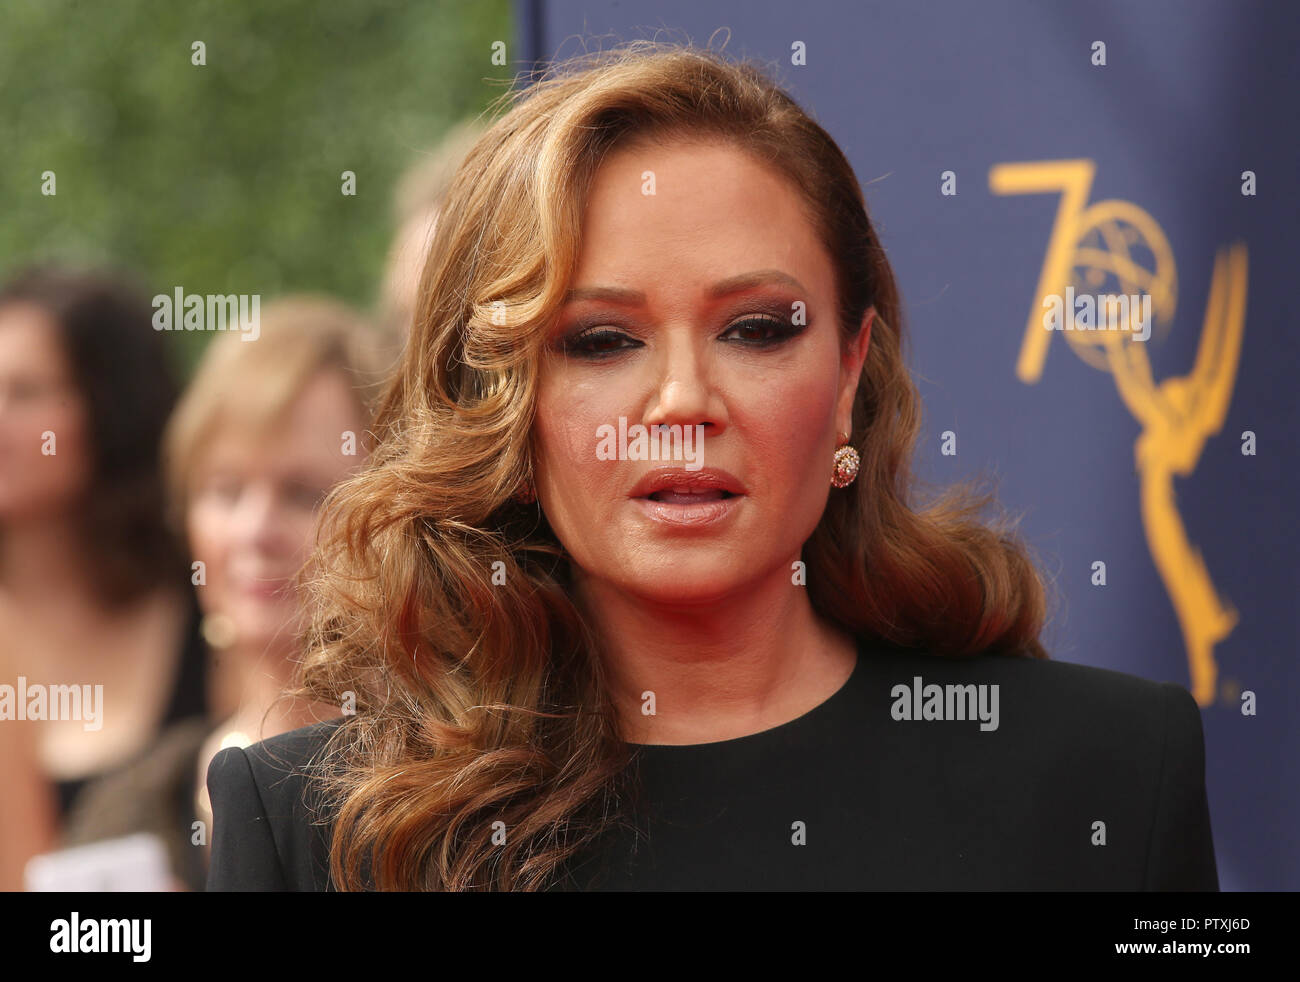 2018 Creative Arts Emmy Awards Day 2 Featuring Leah Remini Where Los Angeles California United States When 10 Sep 2018 Credit Fayesvision Wenn Com Stock Photo Alamy